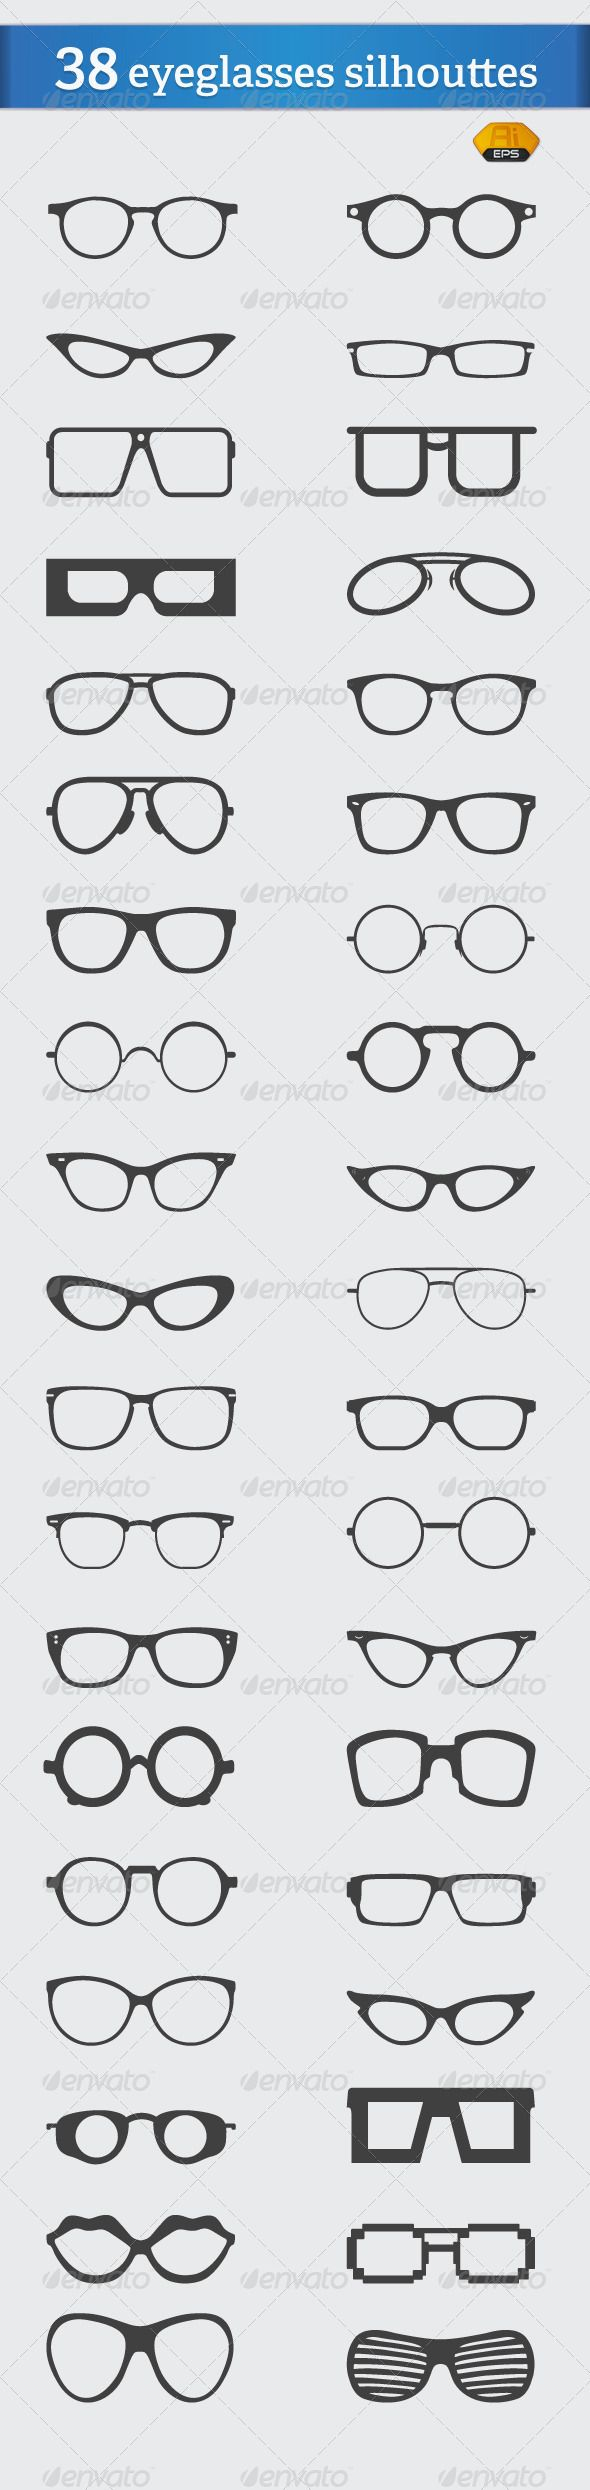 38 Vector Eyeglasses Silhouettes   #GraphicRiver         38 eyeglasses silhouettes  	 available in ai and eps saved at cs and cs5  	 Resizable, east to edit, use & change colors  	 If you have any questions, feel free to contact me at: ramzihachicho@gmail